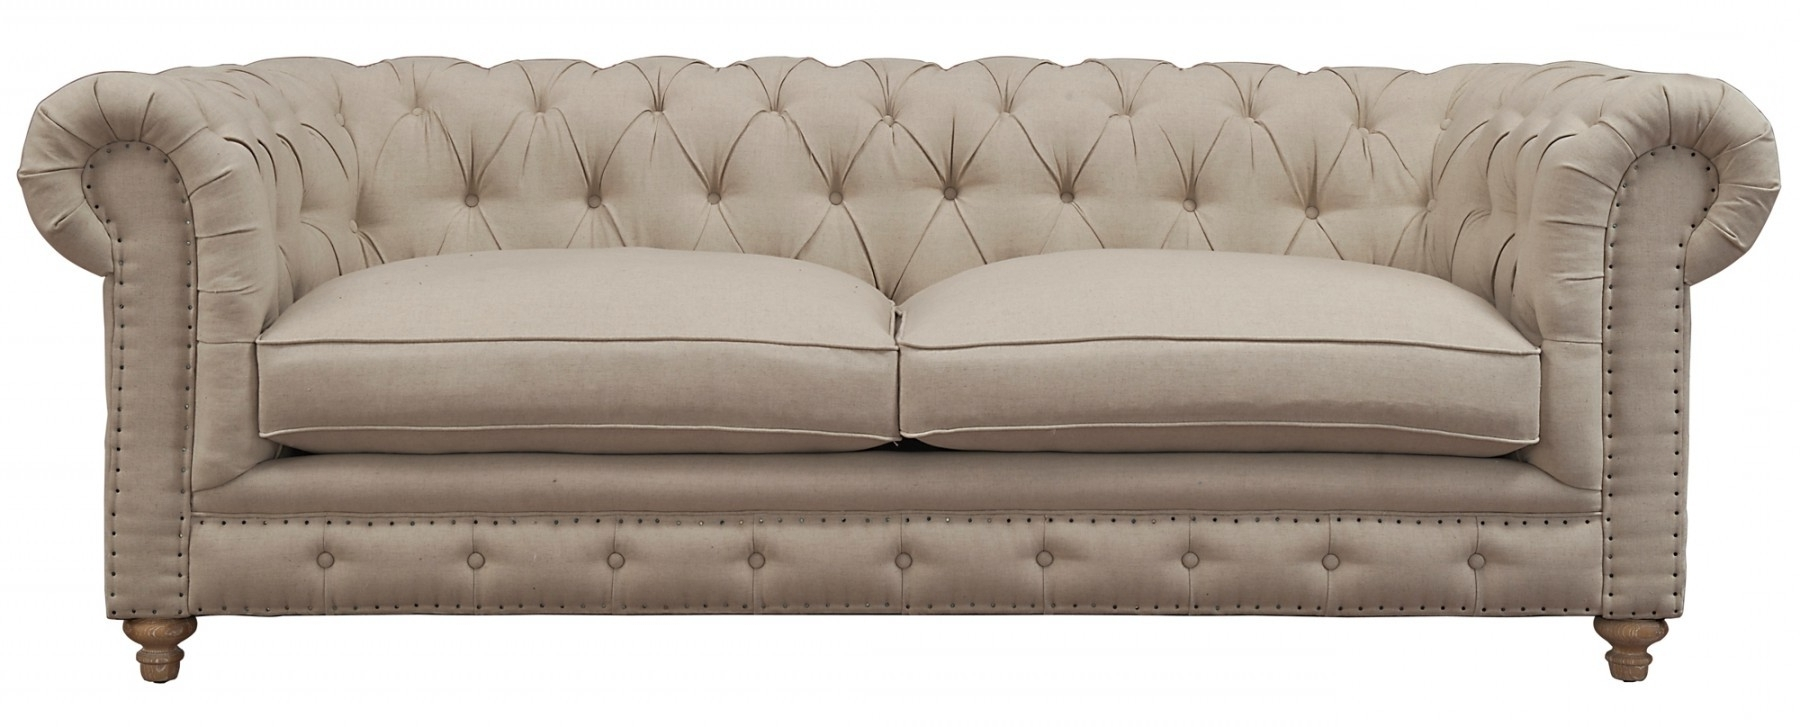 Oxford Beige Linen Sofatov Furniture Buy Online At Best Price Intended For Most Current Oxford Sofas (View 4 of 15)